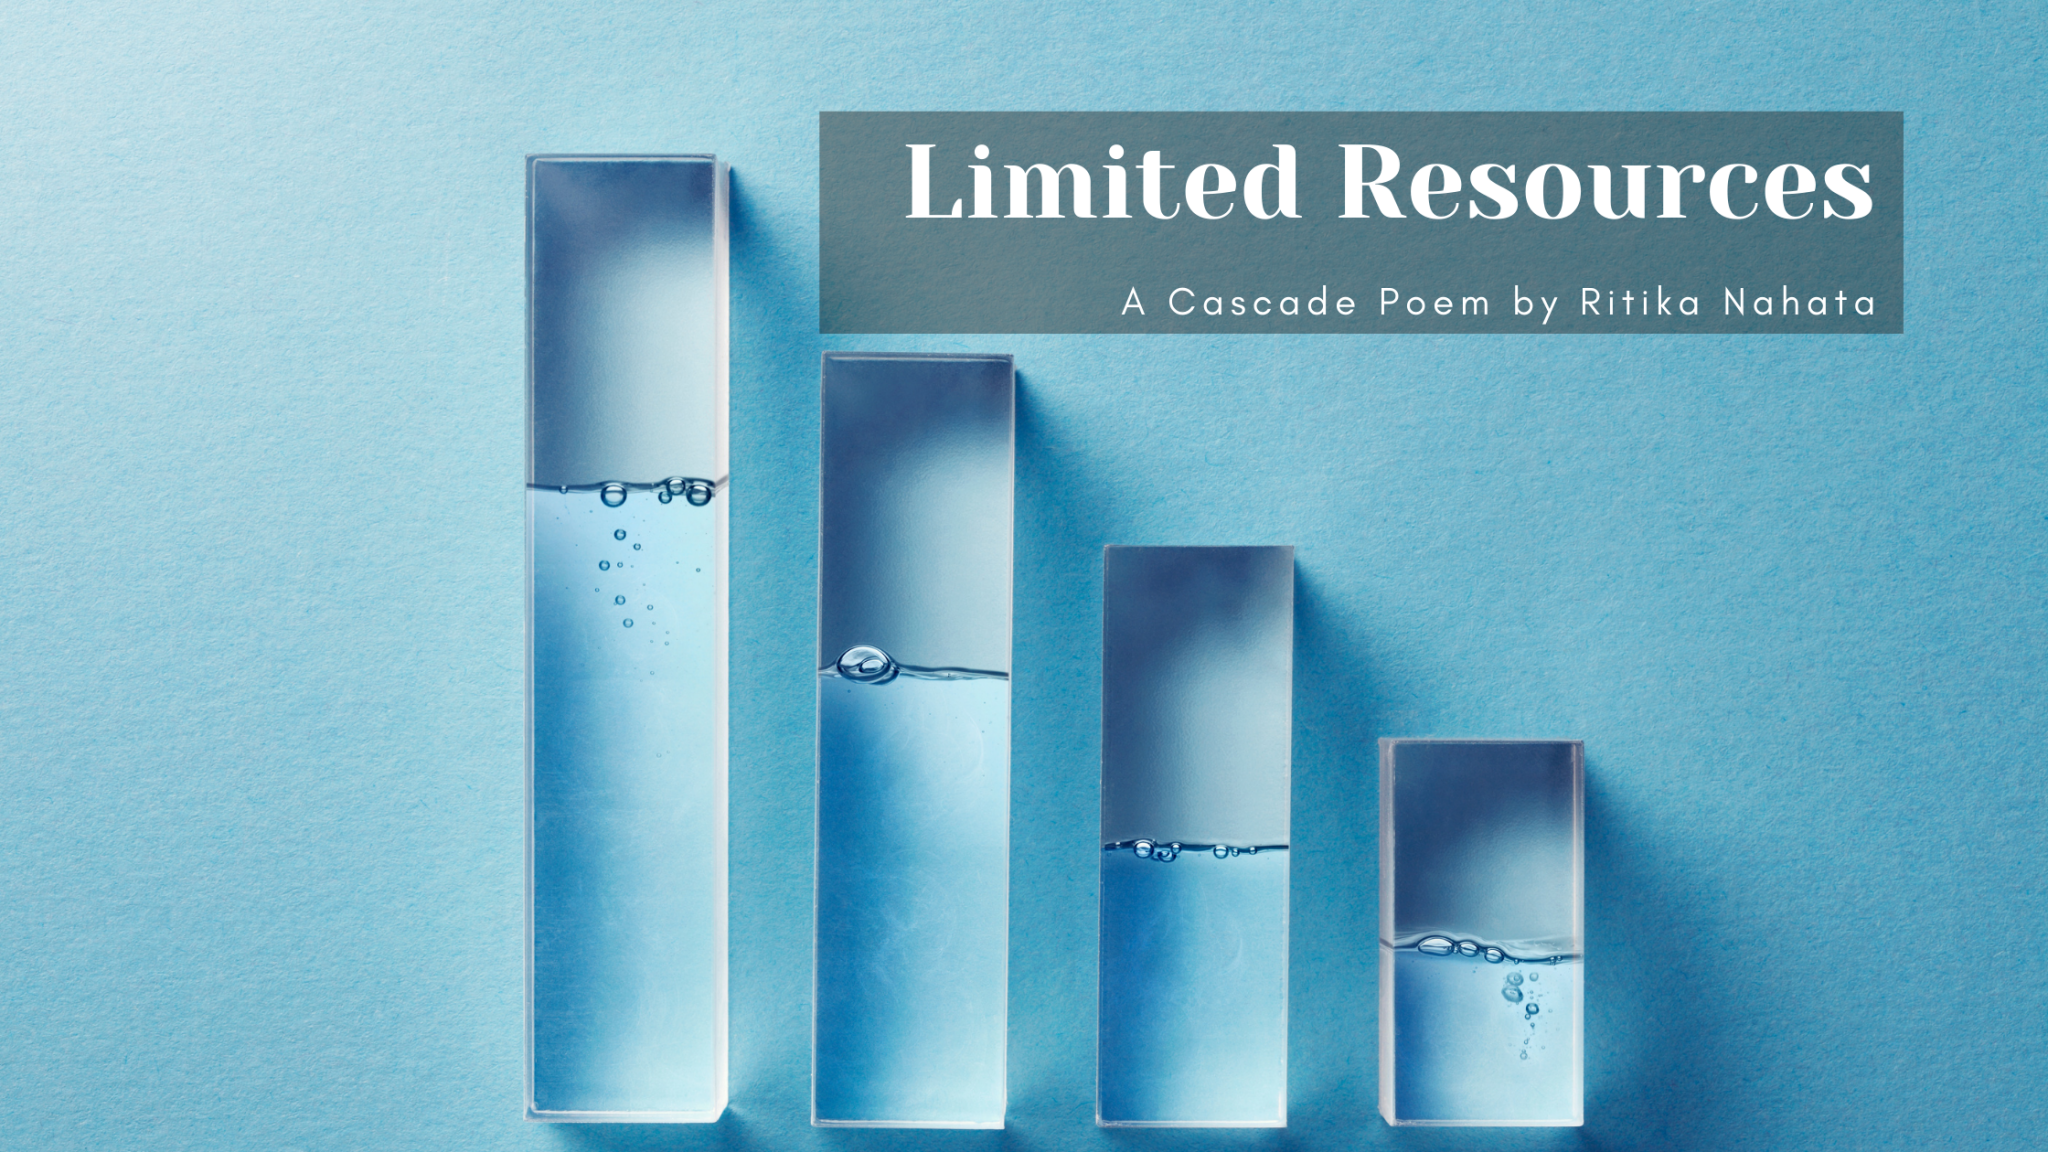 Limited Resources | A Cascade poem by Ritika Nahata